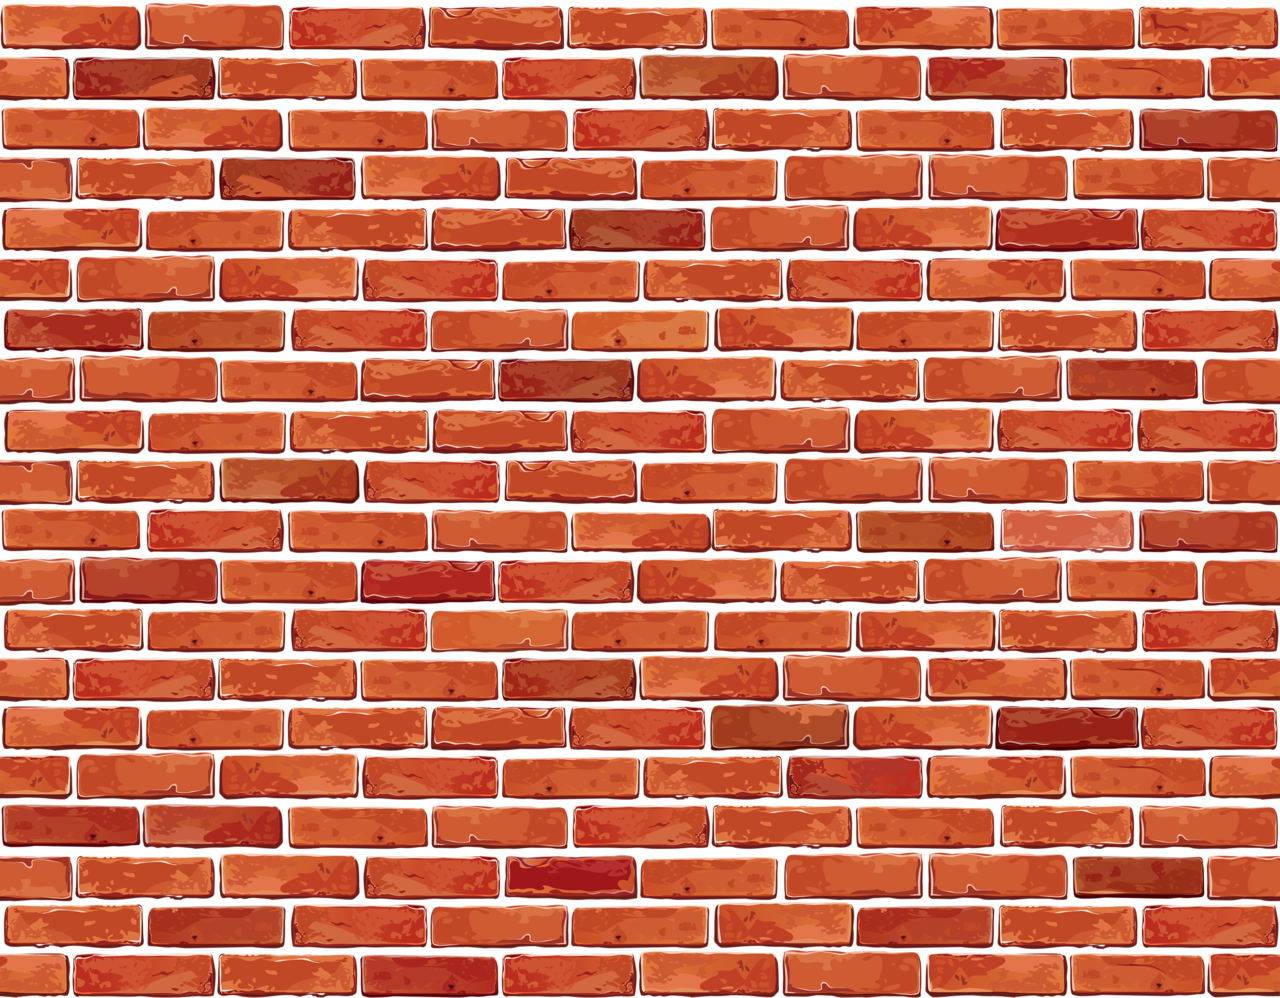 Red brick background clipart transparent library Red bricks texture clipart images gallery for free download | MyReal ... transparent library